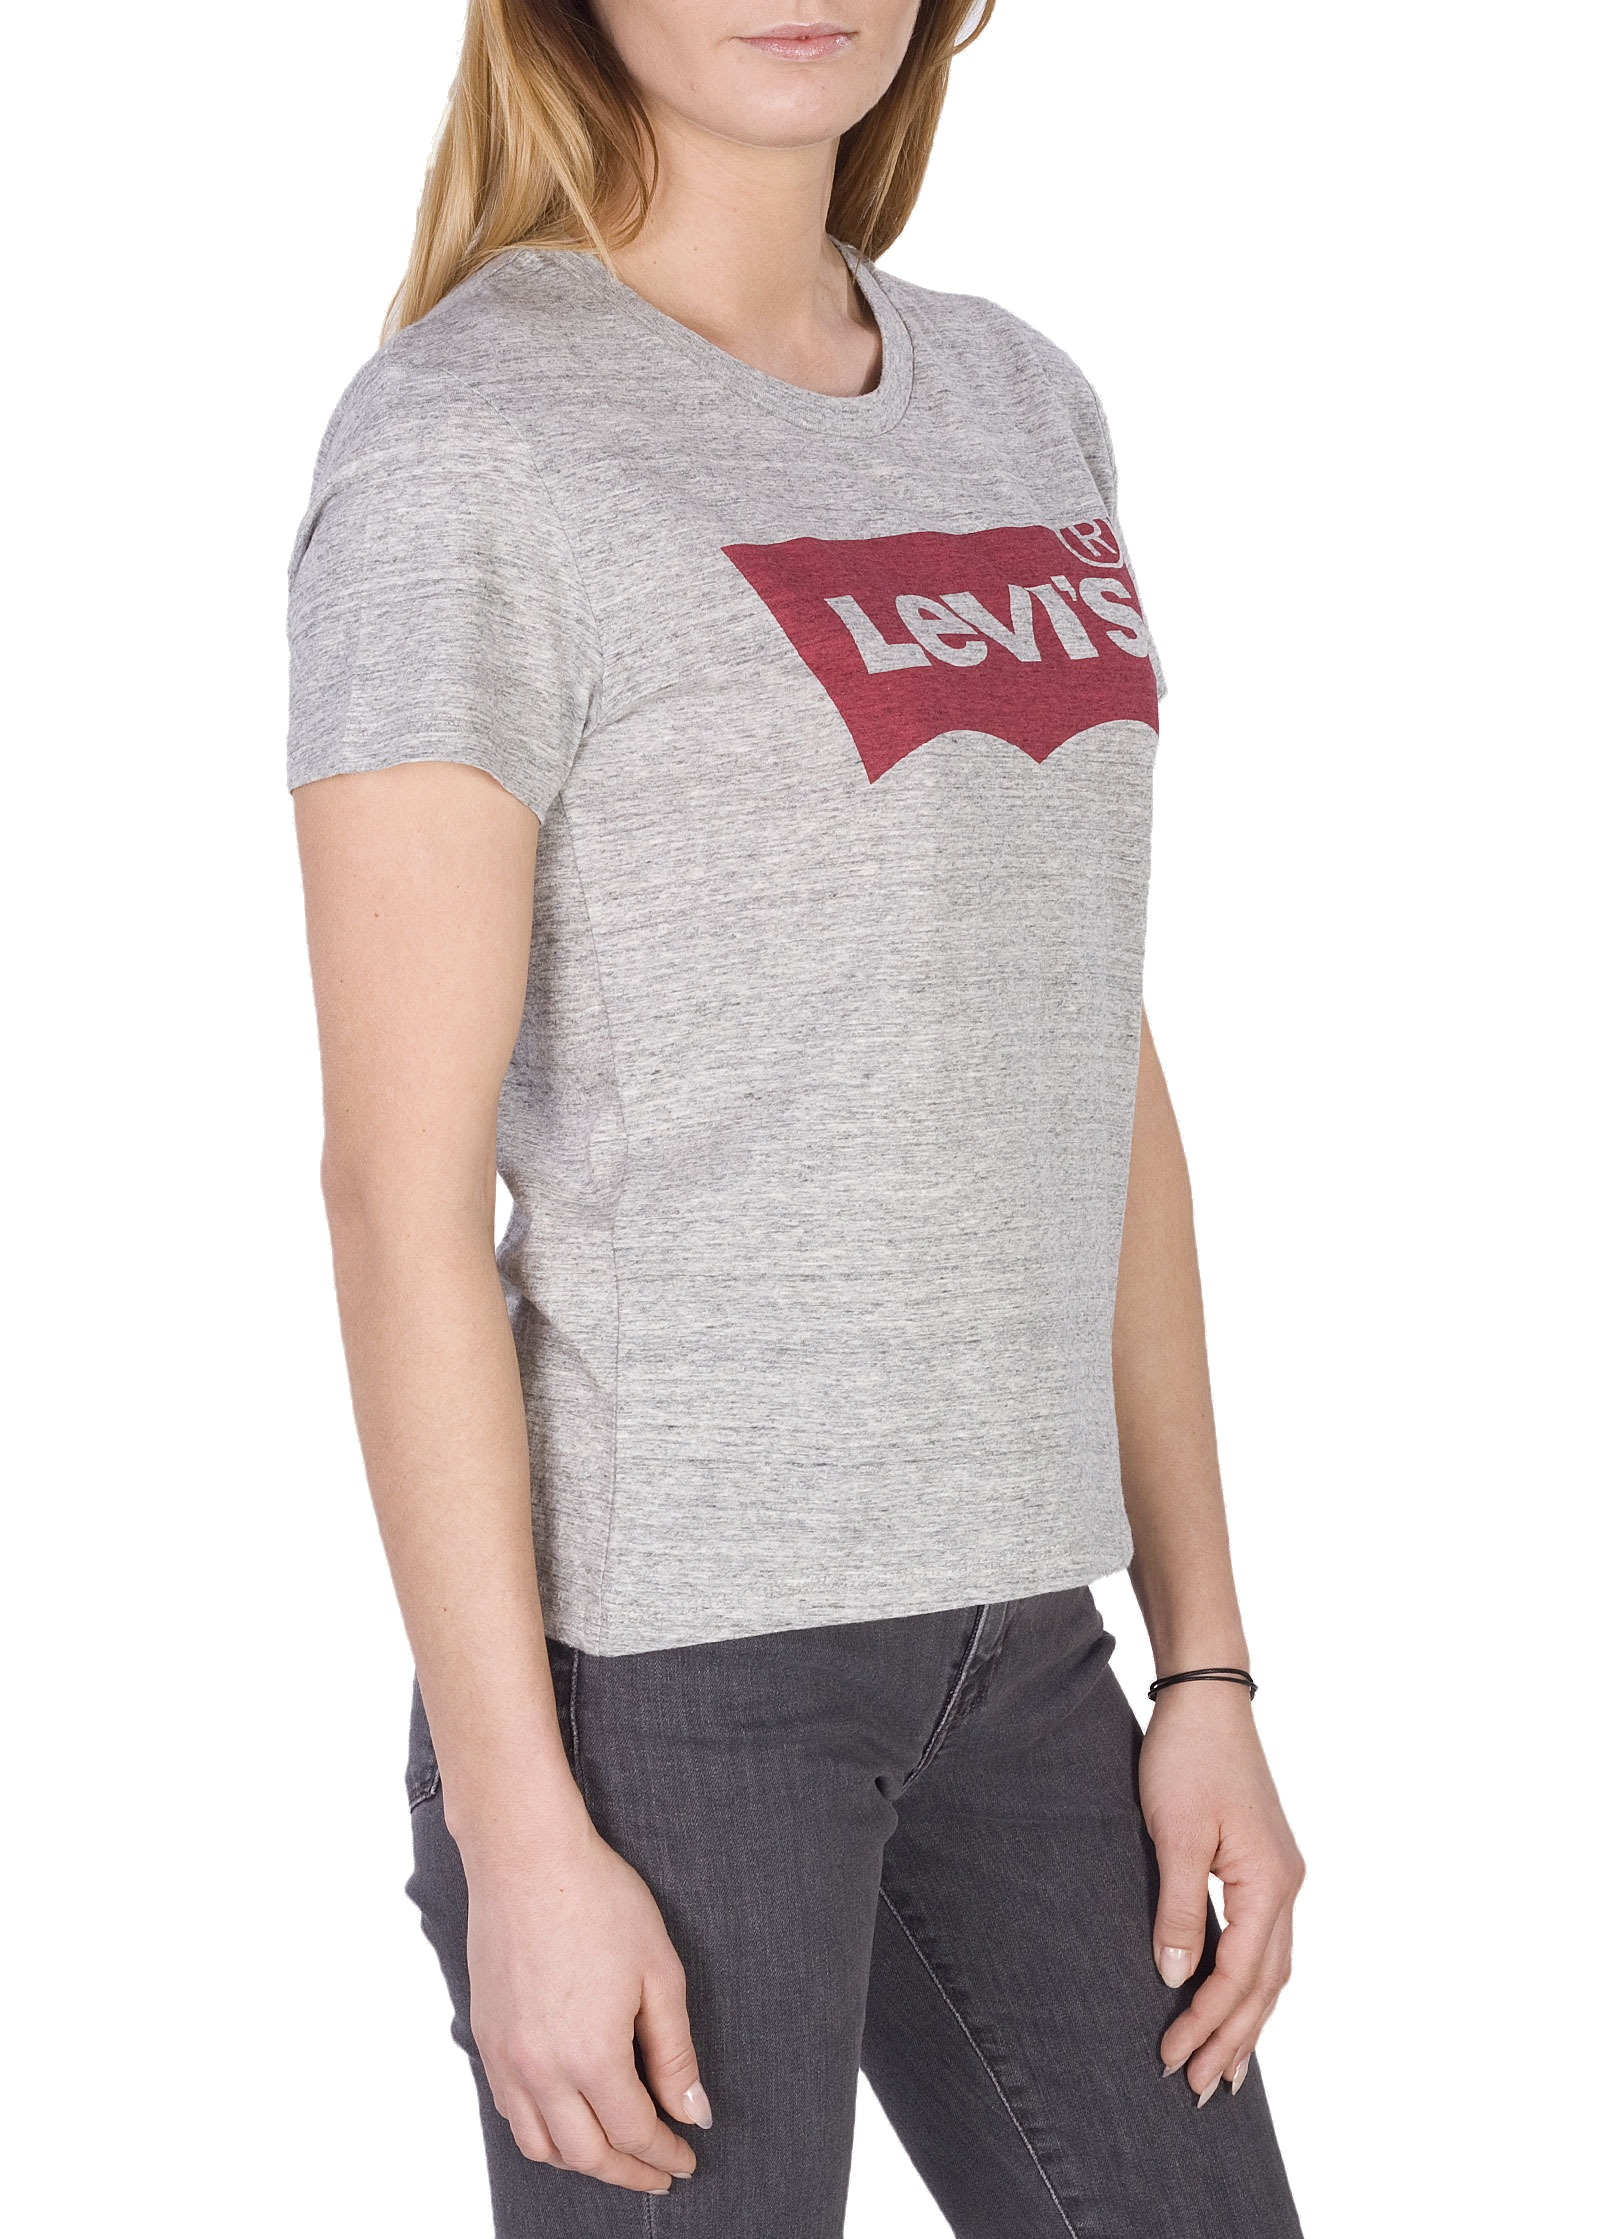 Levi-039-s-NEW-Two-Tone-Women-039-s-Classic-Batwing-Logo-Crewneck-Short-Sleeve-T-Shirt thumbnail 5